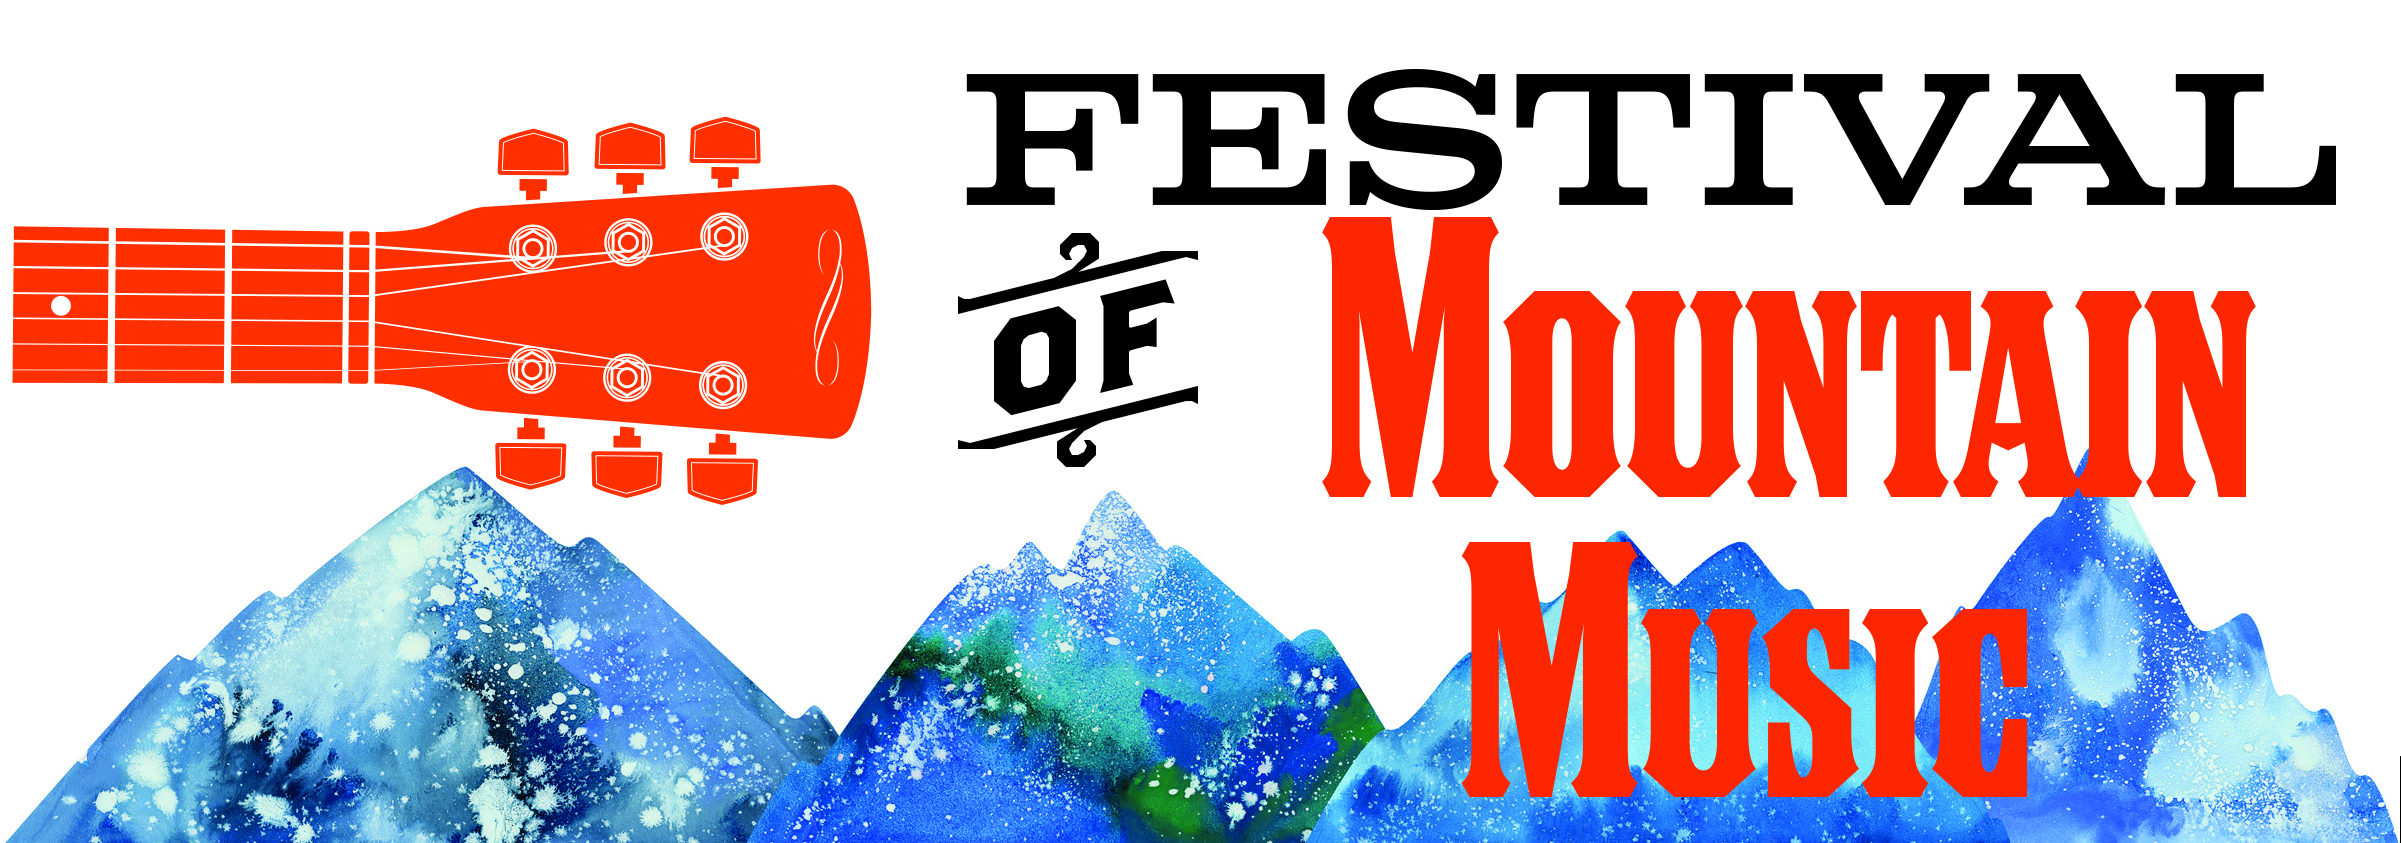 Festival of Mountain Music